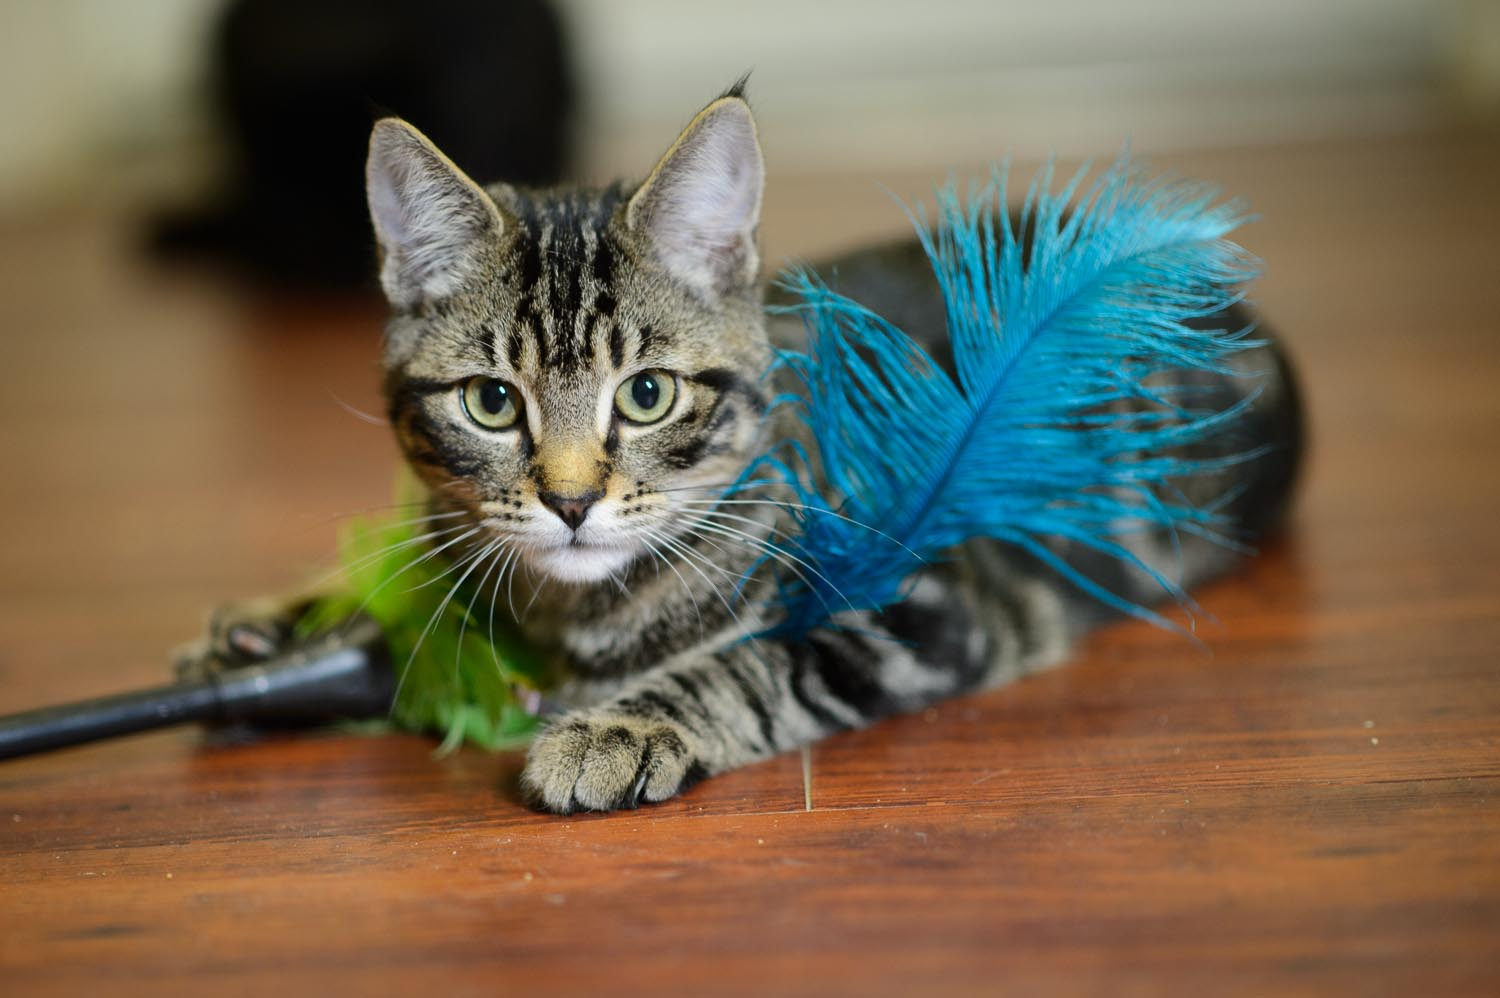 Curious cute tabby cat lying on wood floor playing with feather wand toy